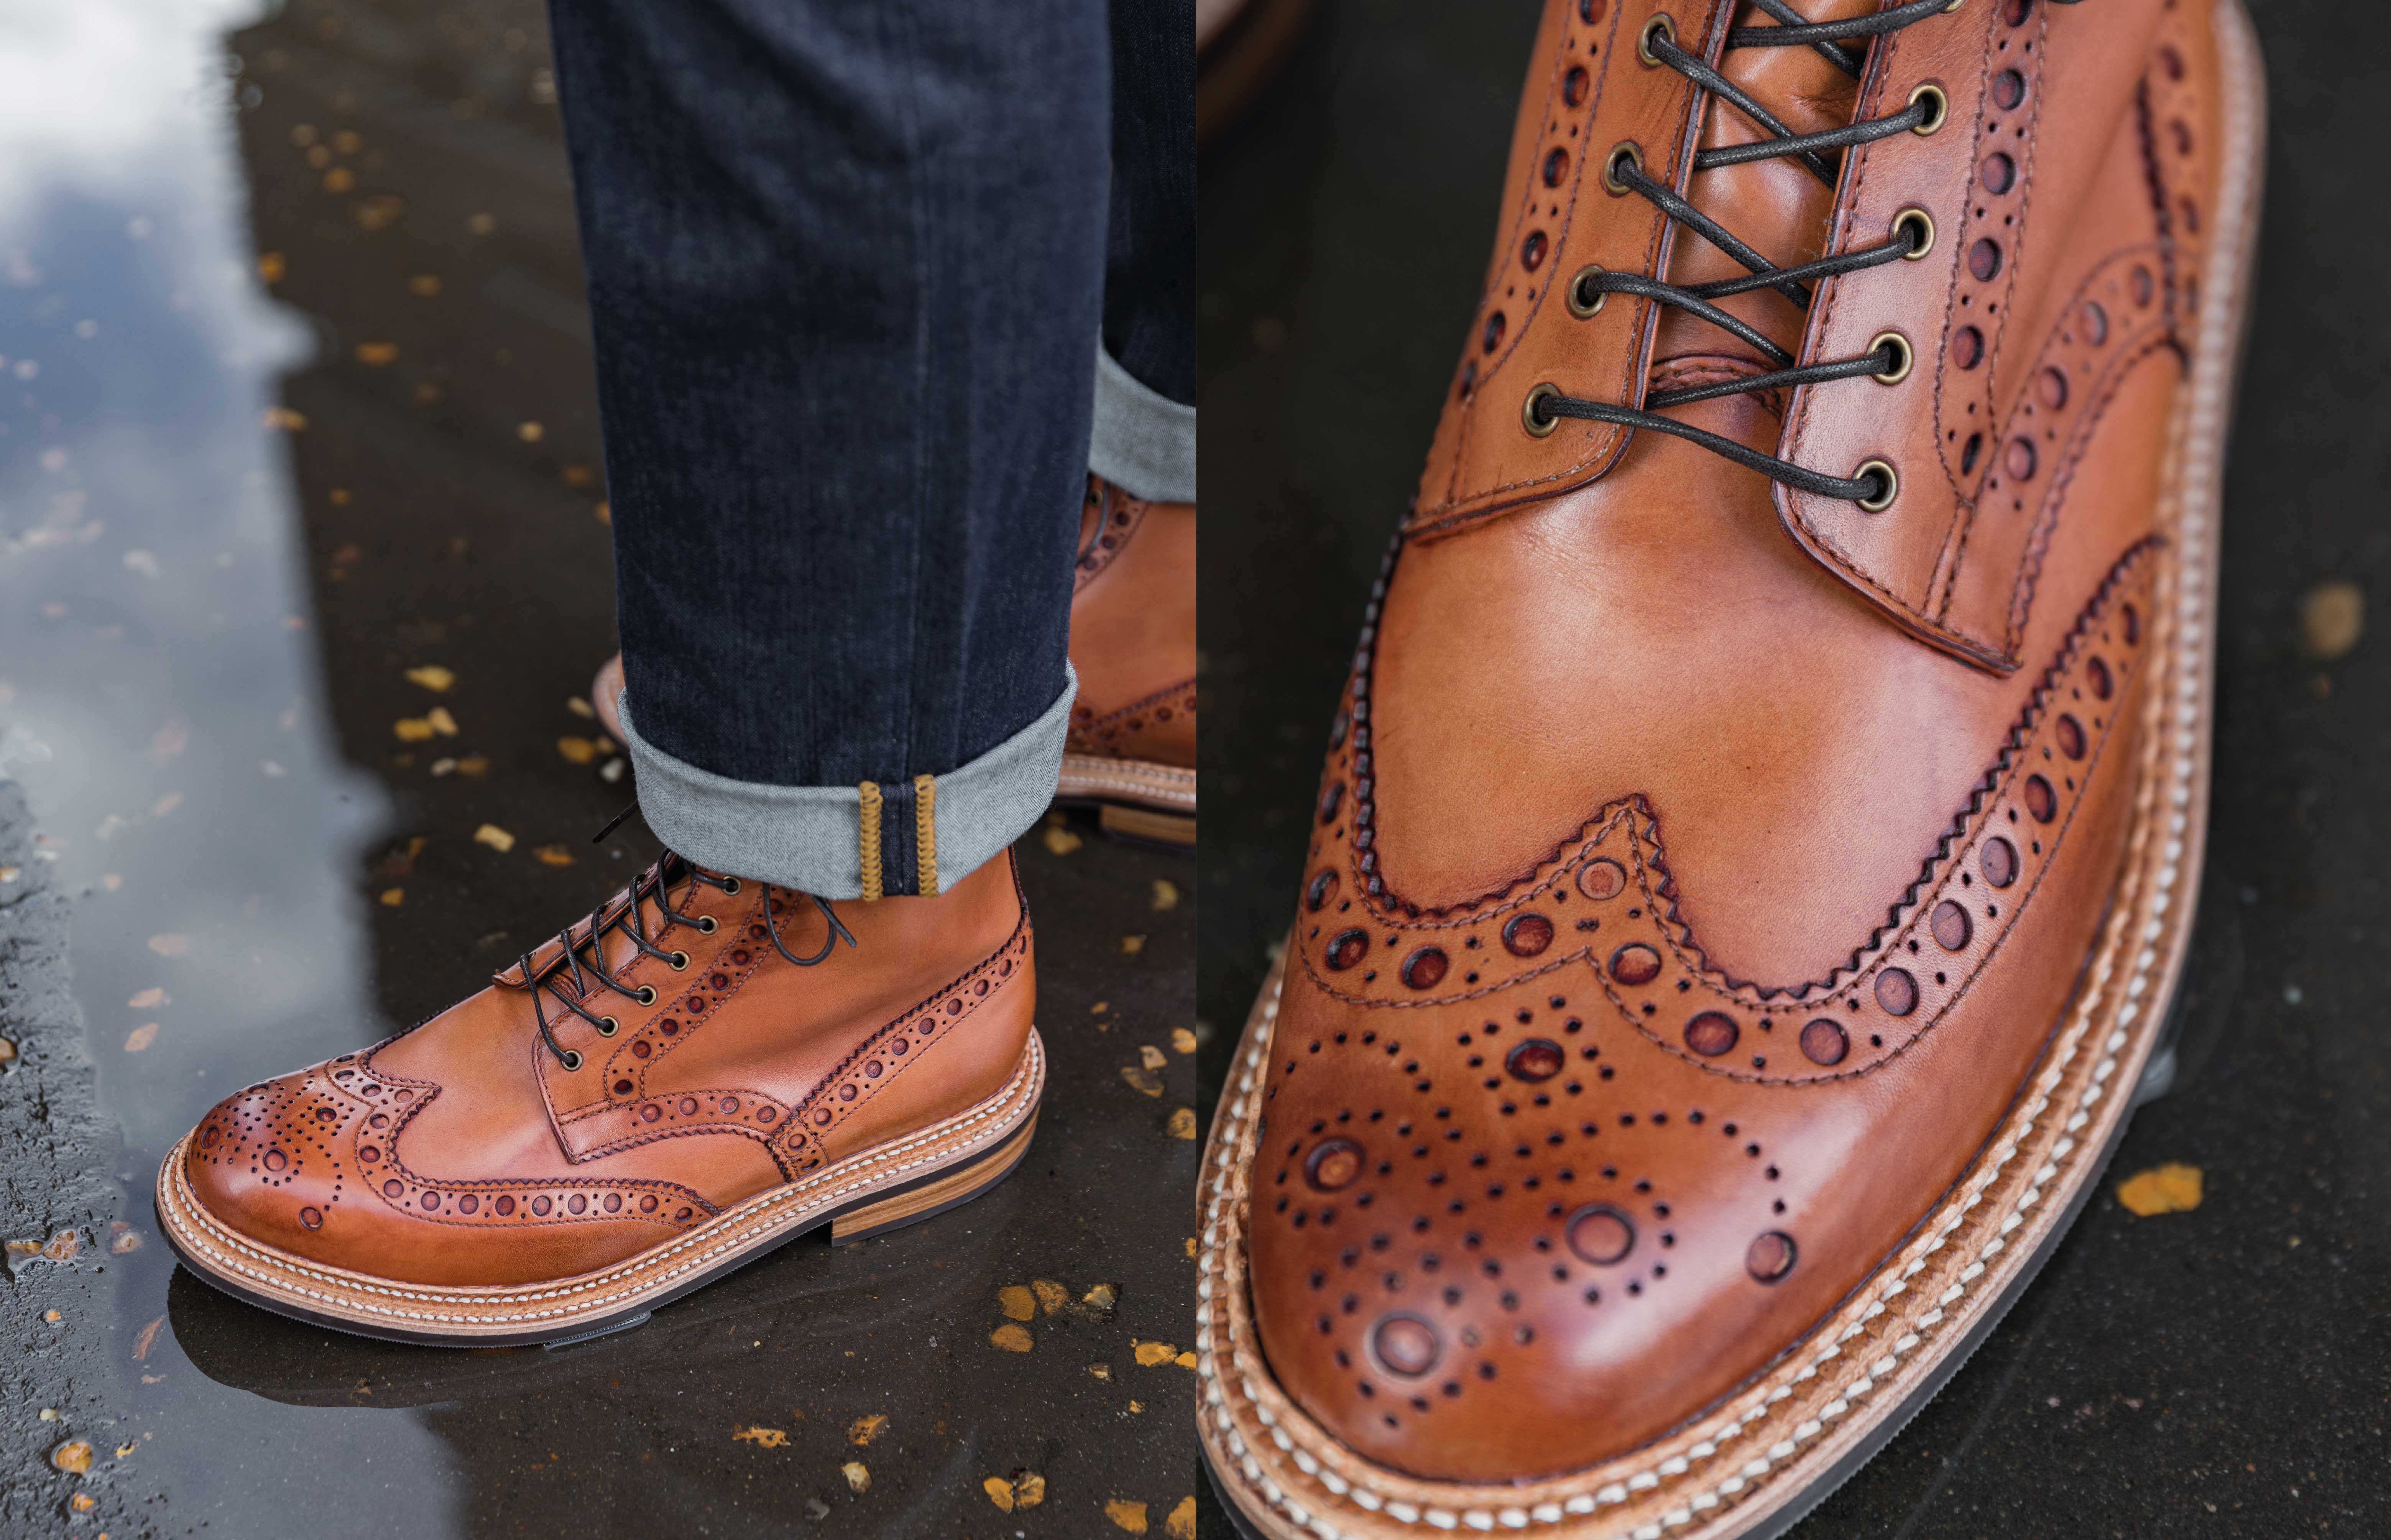 Four shoes every man should own